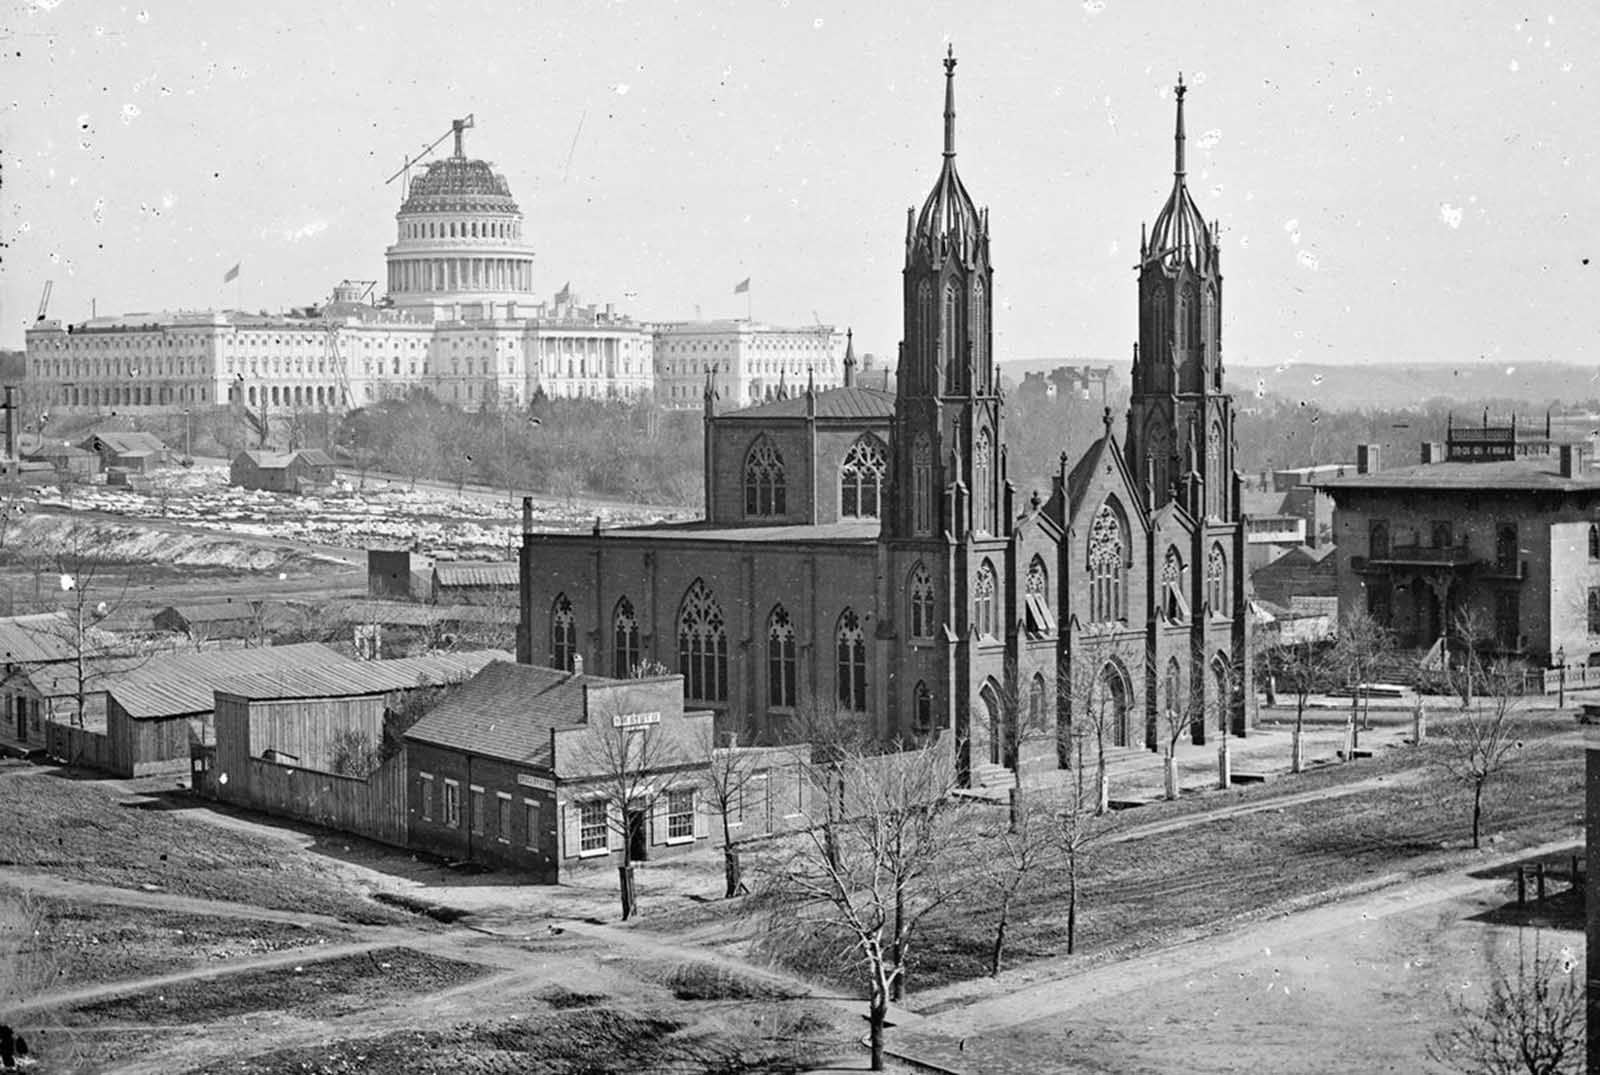 A view of Washington, District of Columbia, from the intersection of 3rd and Indiana Avenue, ca. 1863. In the foreground is Trinity Episcopal Church, in the background, the unfinished Capitol building. Construction on the capitol was briefly suspended early in the war, but continued through the later years.